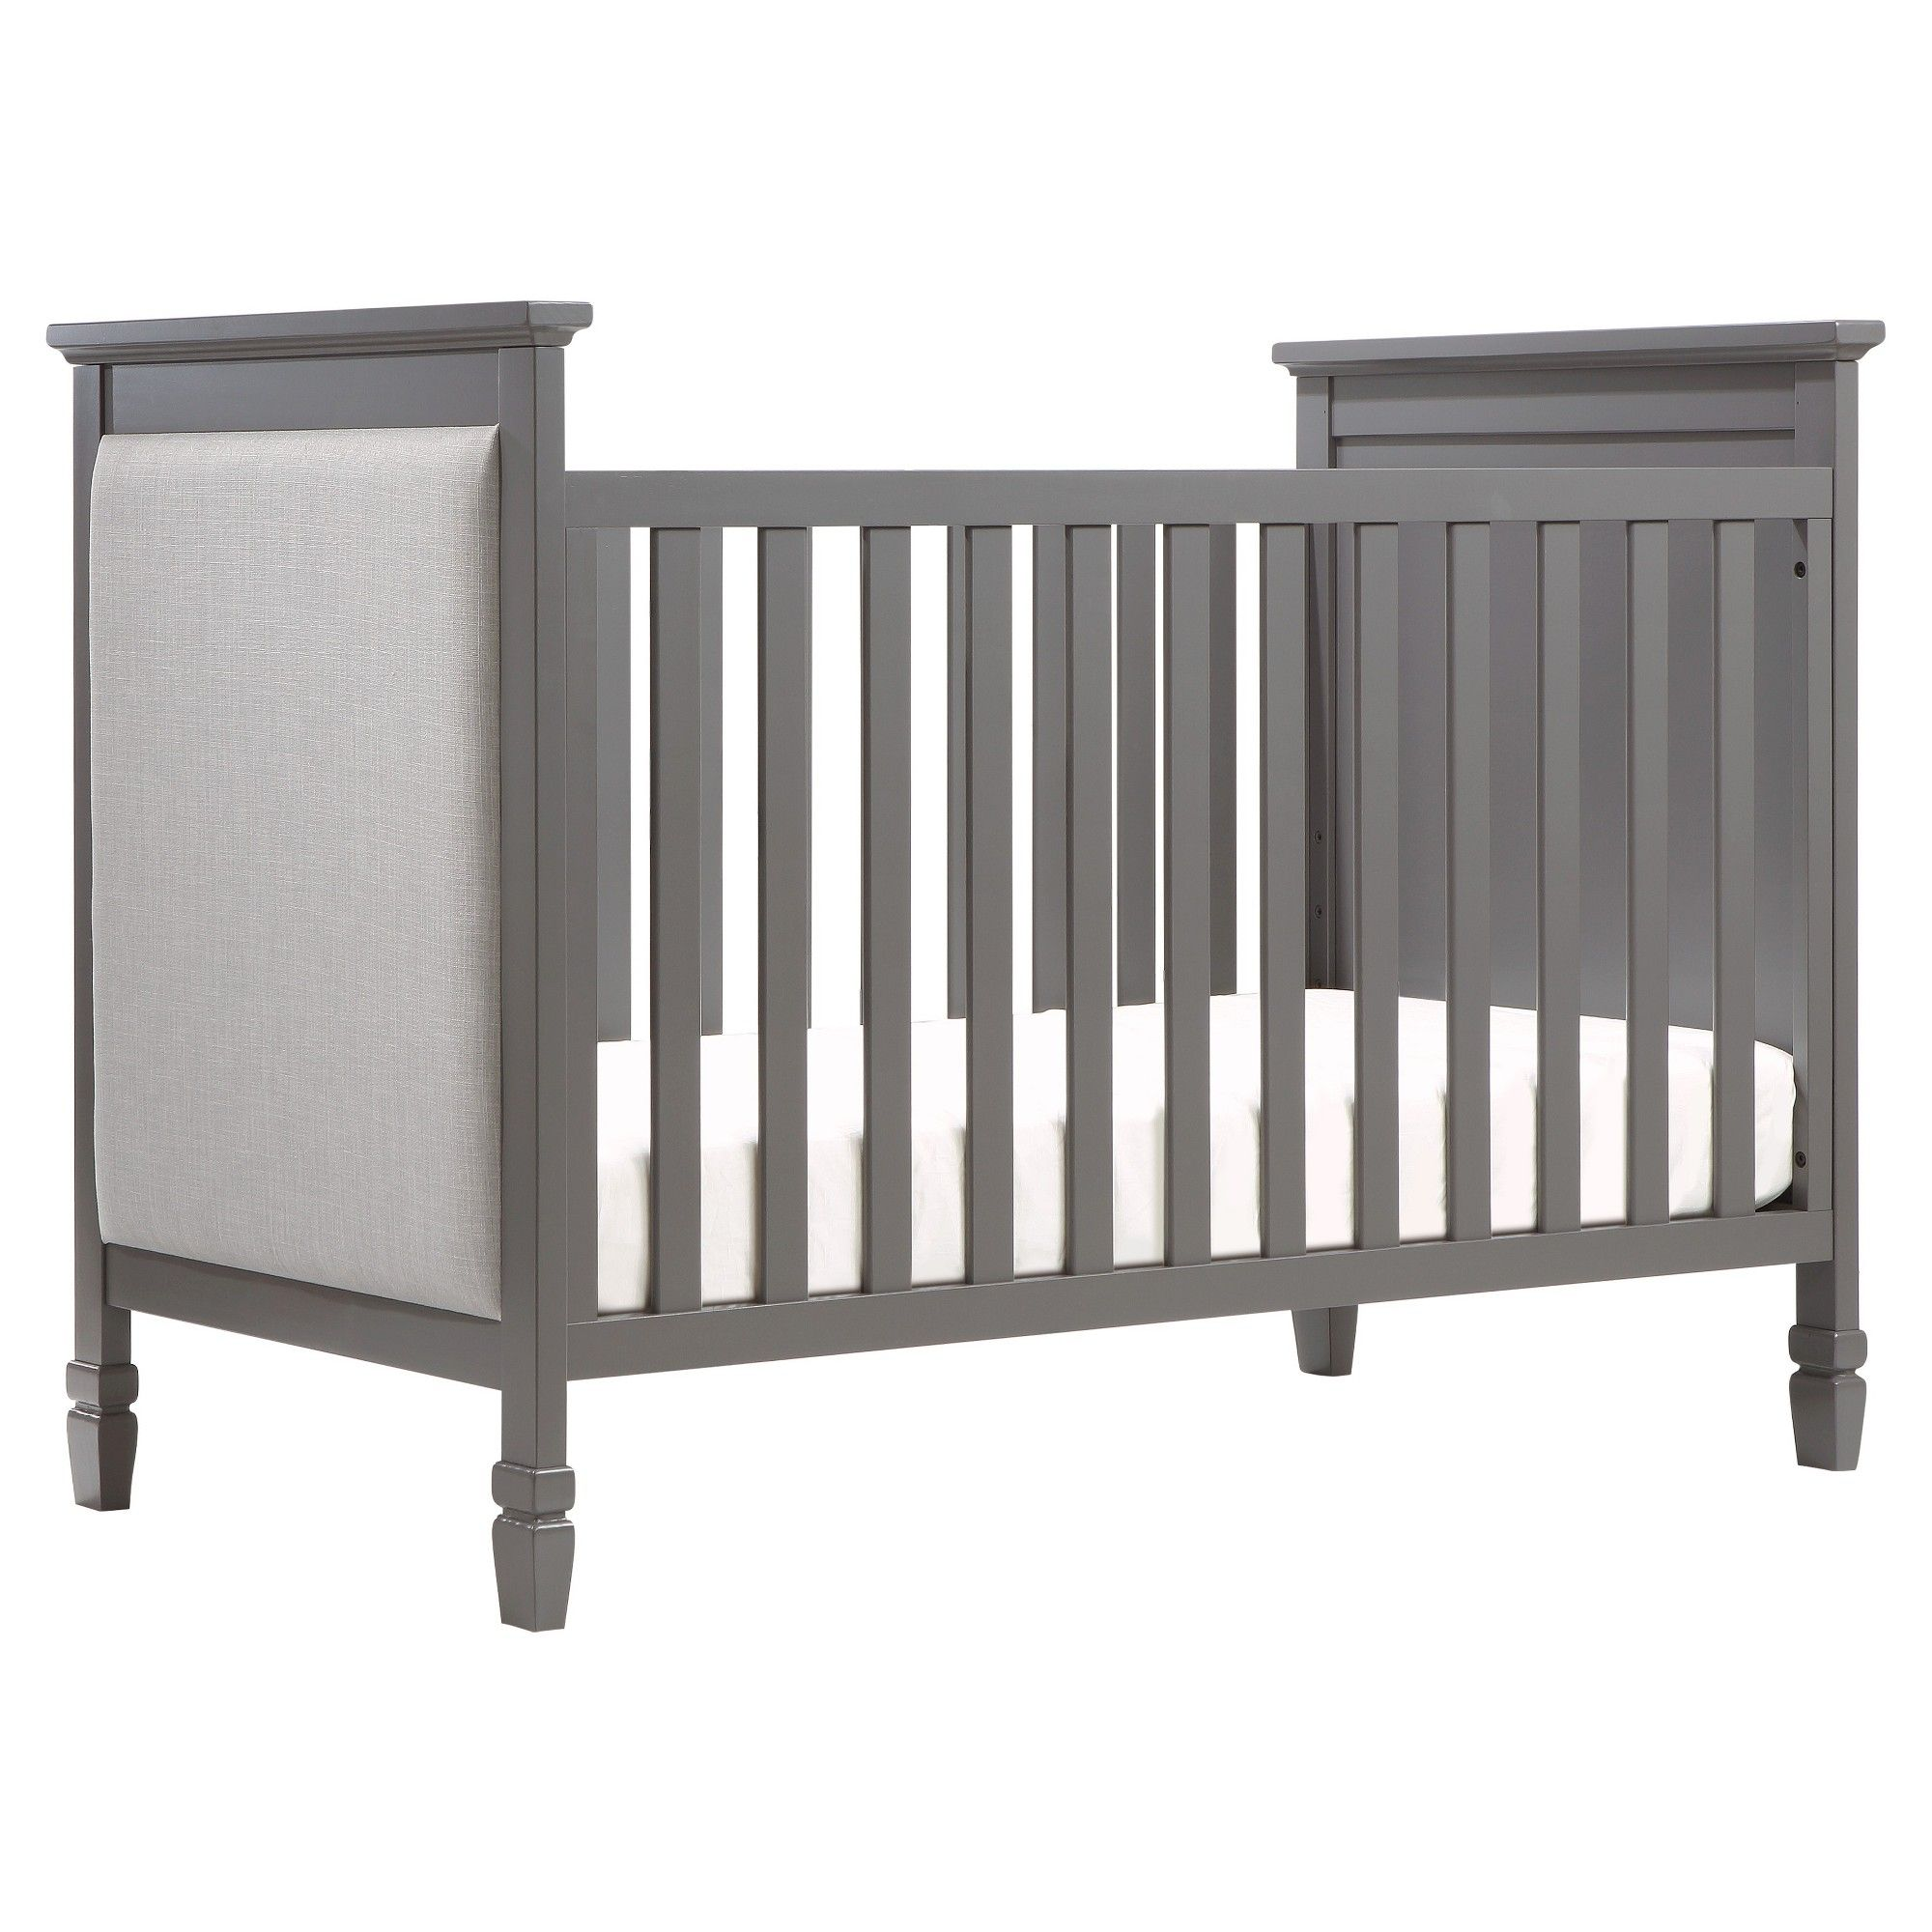 cribs davinci free liberty convertible garden jenny in shipping home crib lind today overstock product